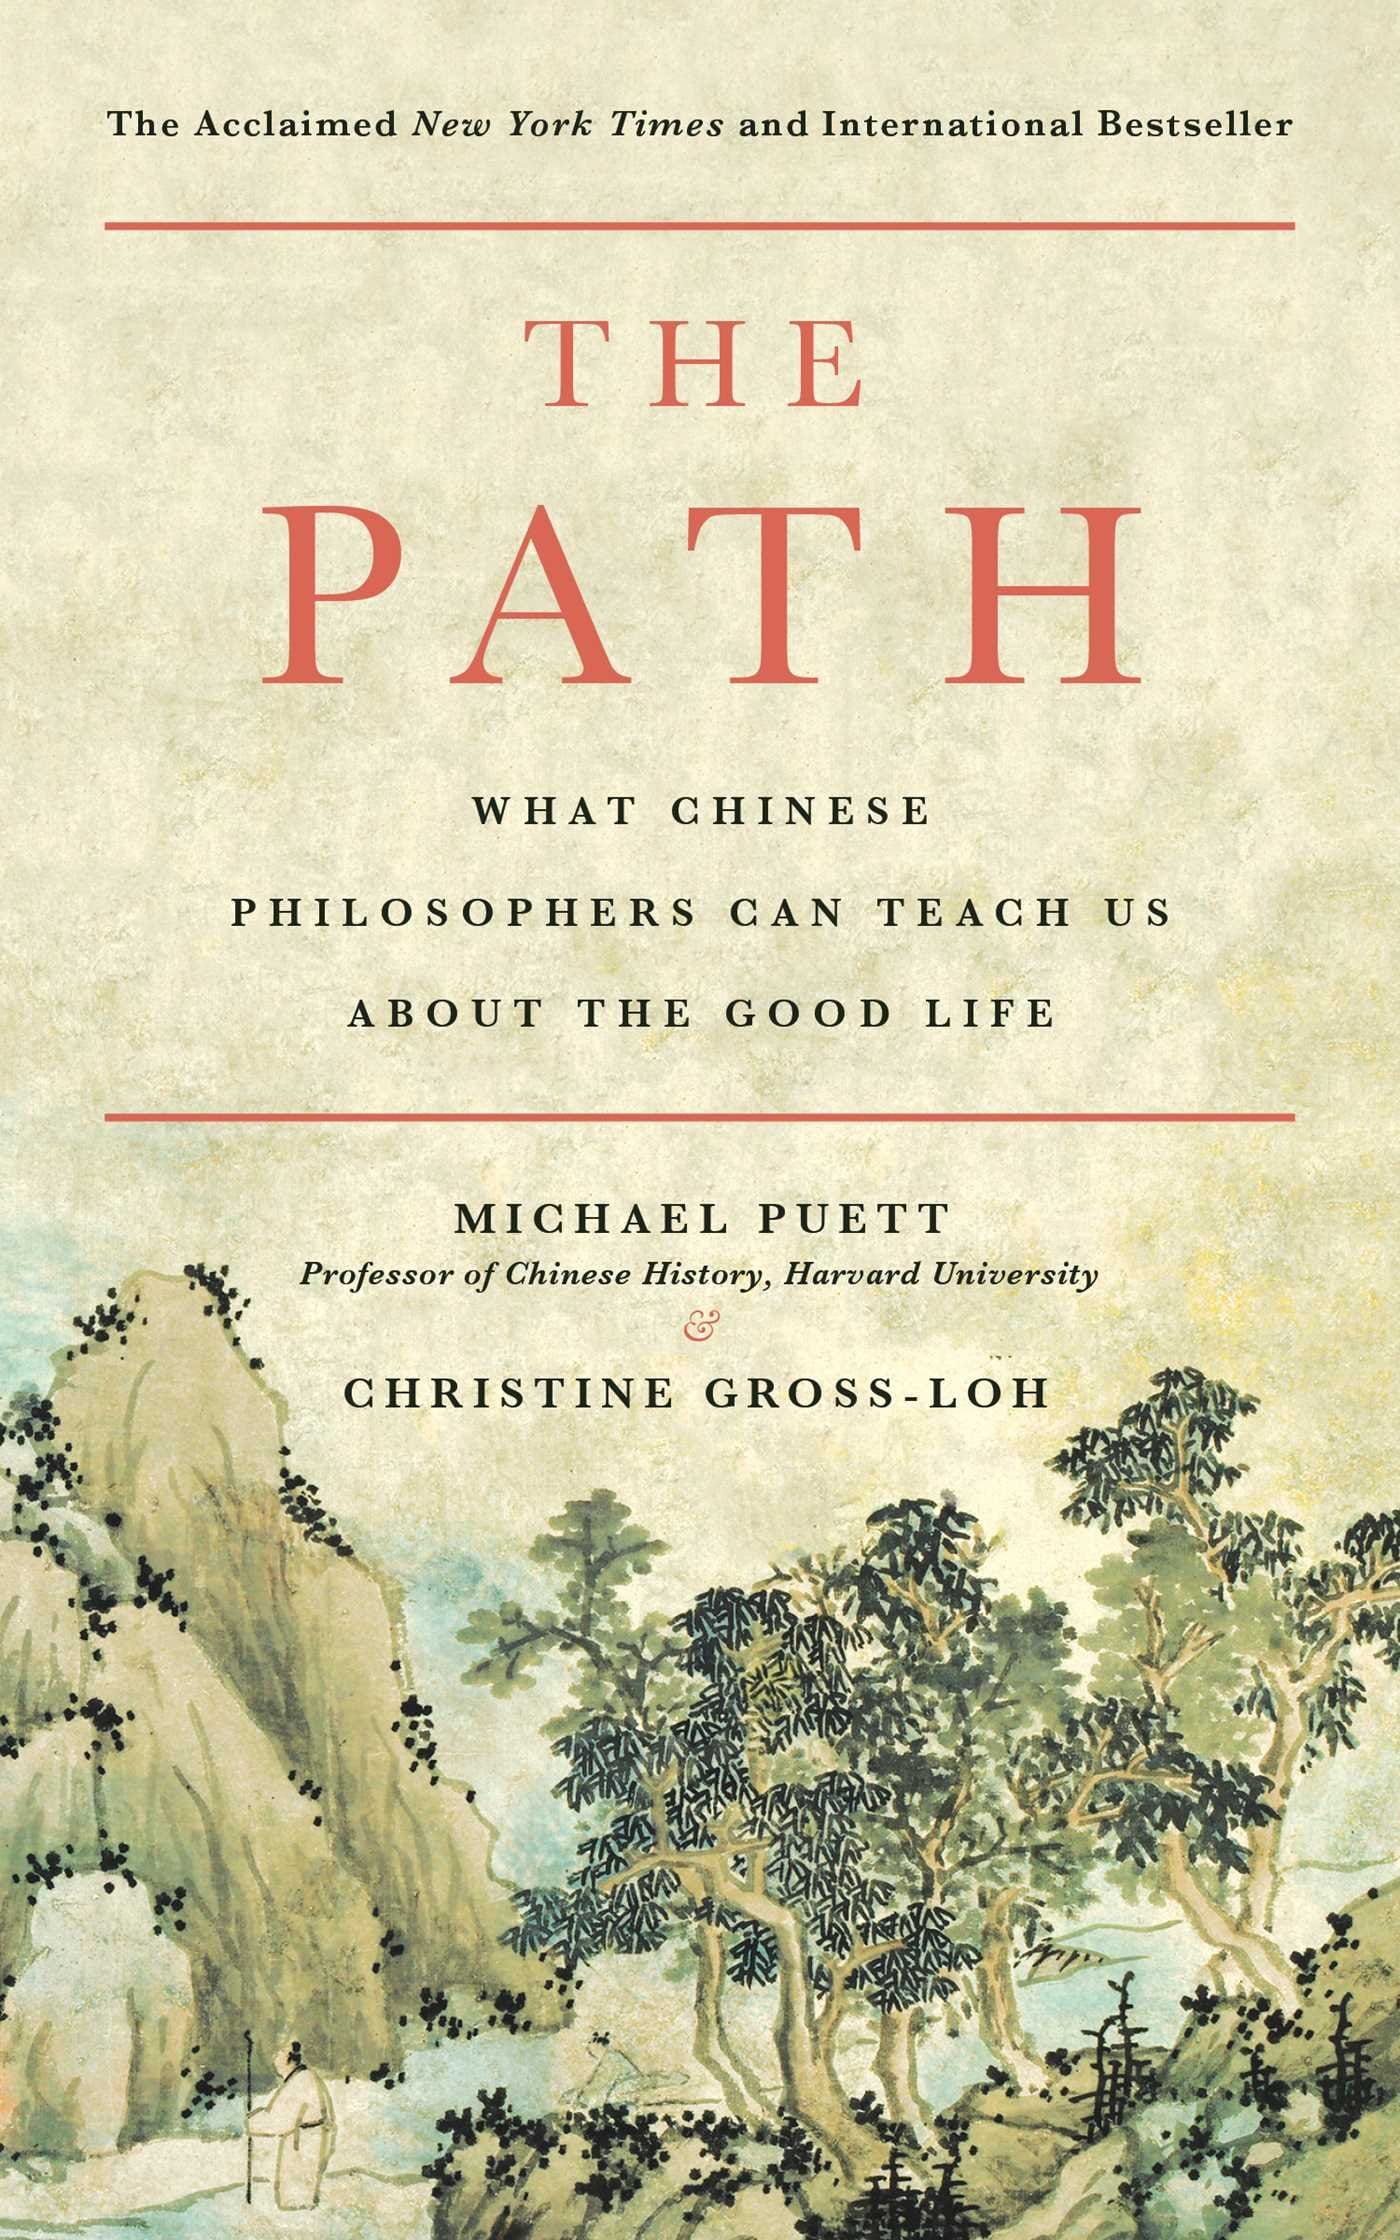 the-path-michael-puett-christine-gross-loh